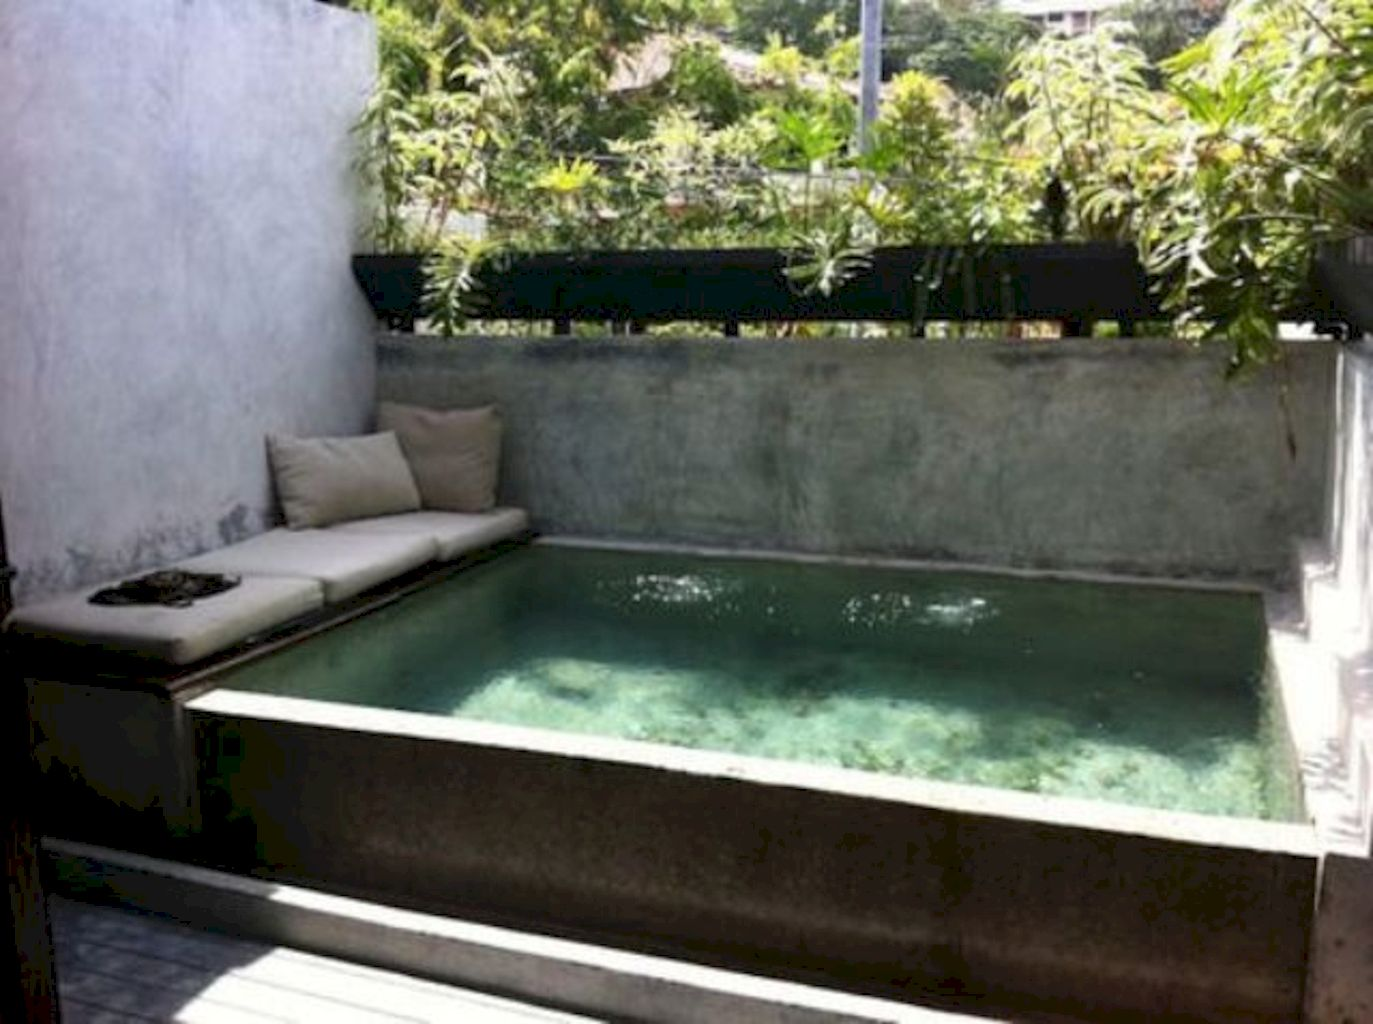 Simple pool designs built above ground designed with cheap materials for simple outdoor relieves Image 15